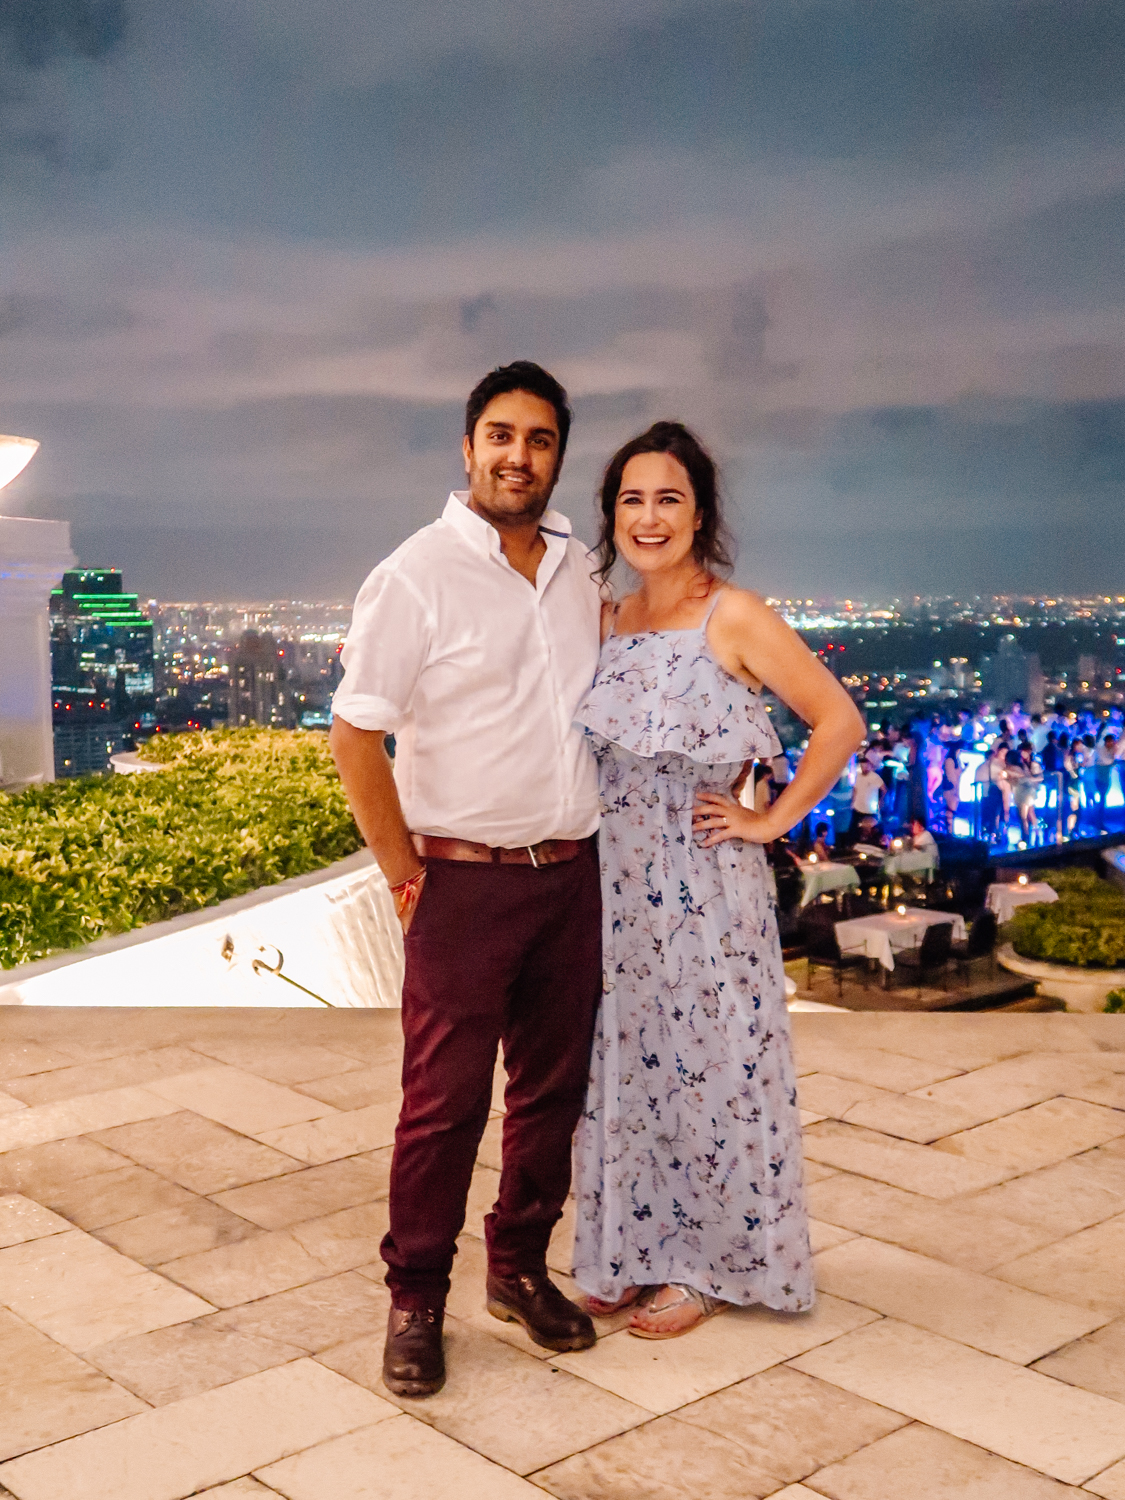 Inter-racial couple dressed smartly at a rooftop bar overlooking Bangkok skyline at night